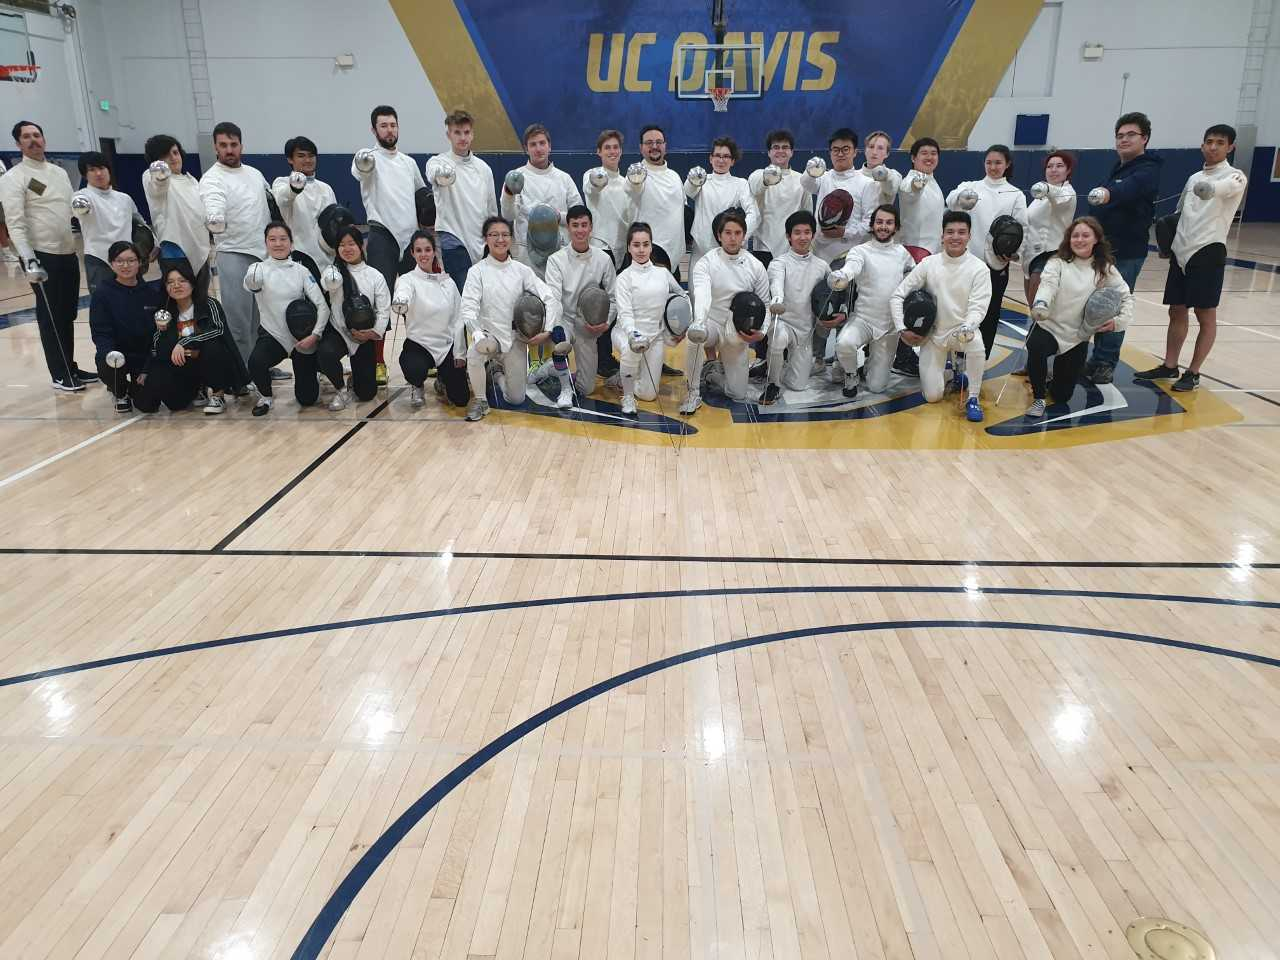 fencing team photo